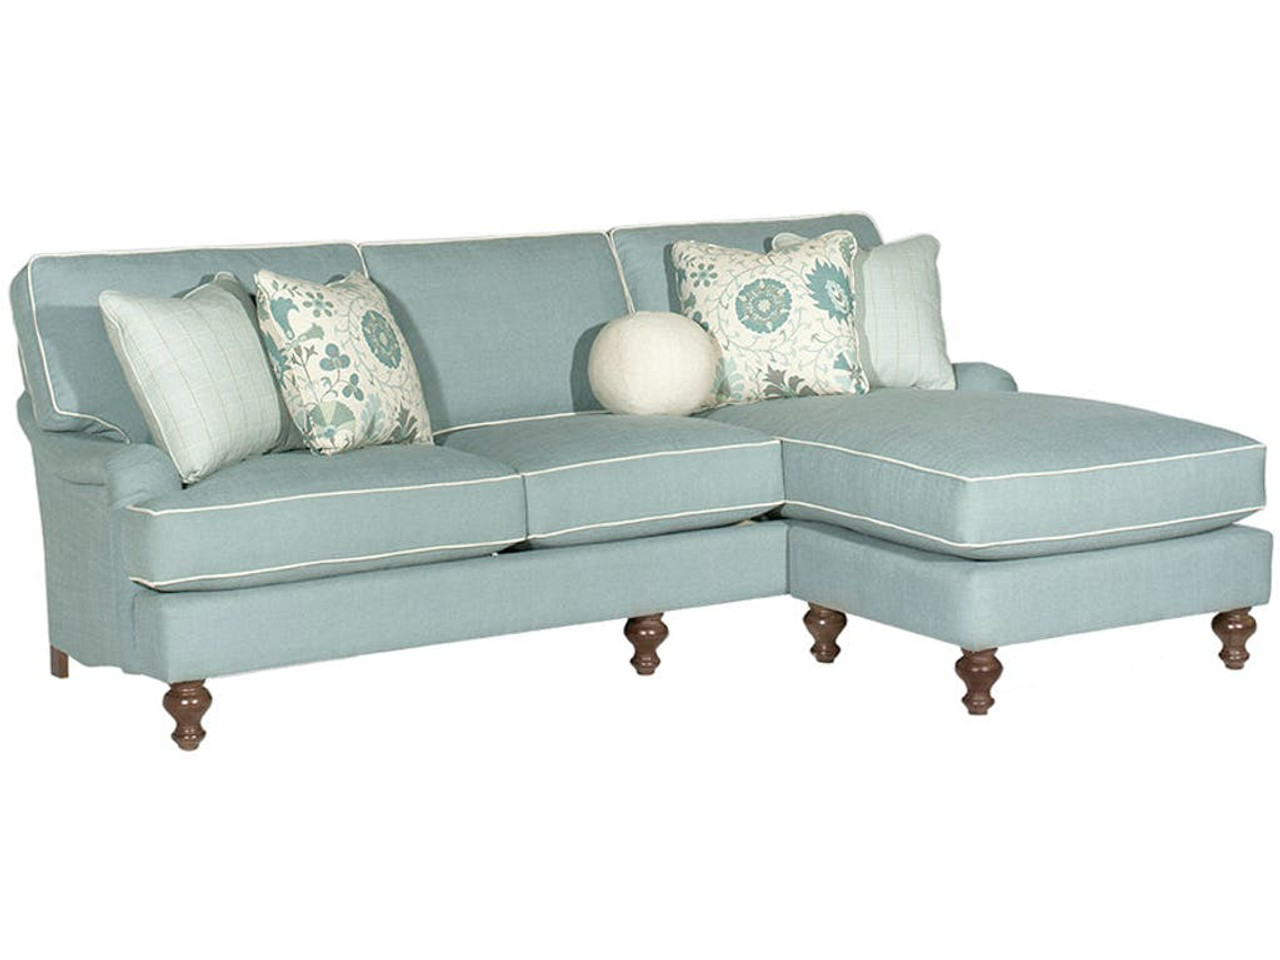 Buy The Paula Deen By Craftmaster Model P734357bd Sofa Couch On